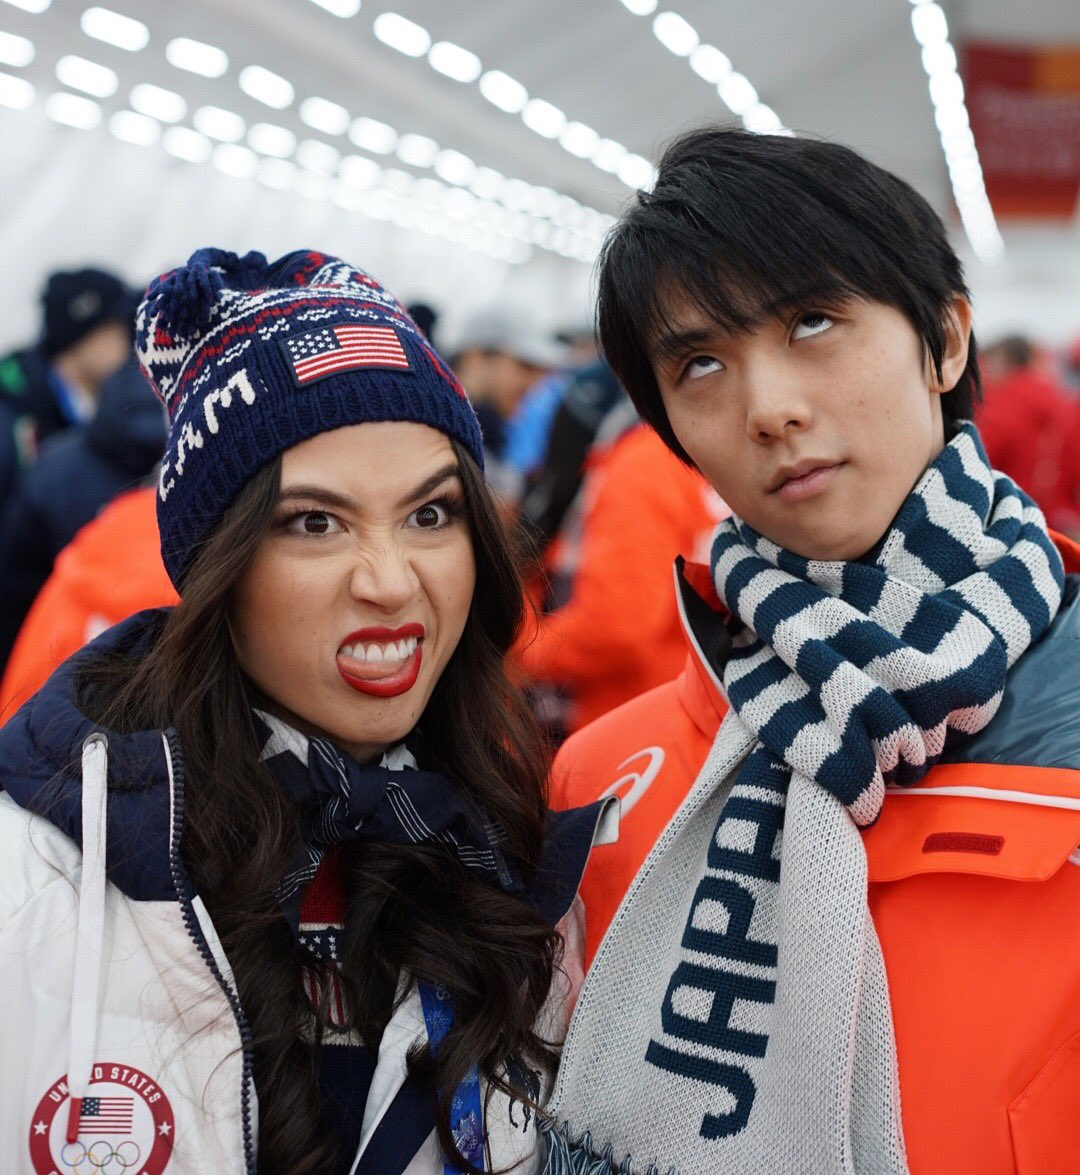 When the Olympics are over and you have to go home   #PyeongChang2018 #Olympics